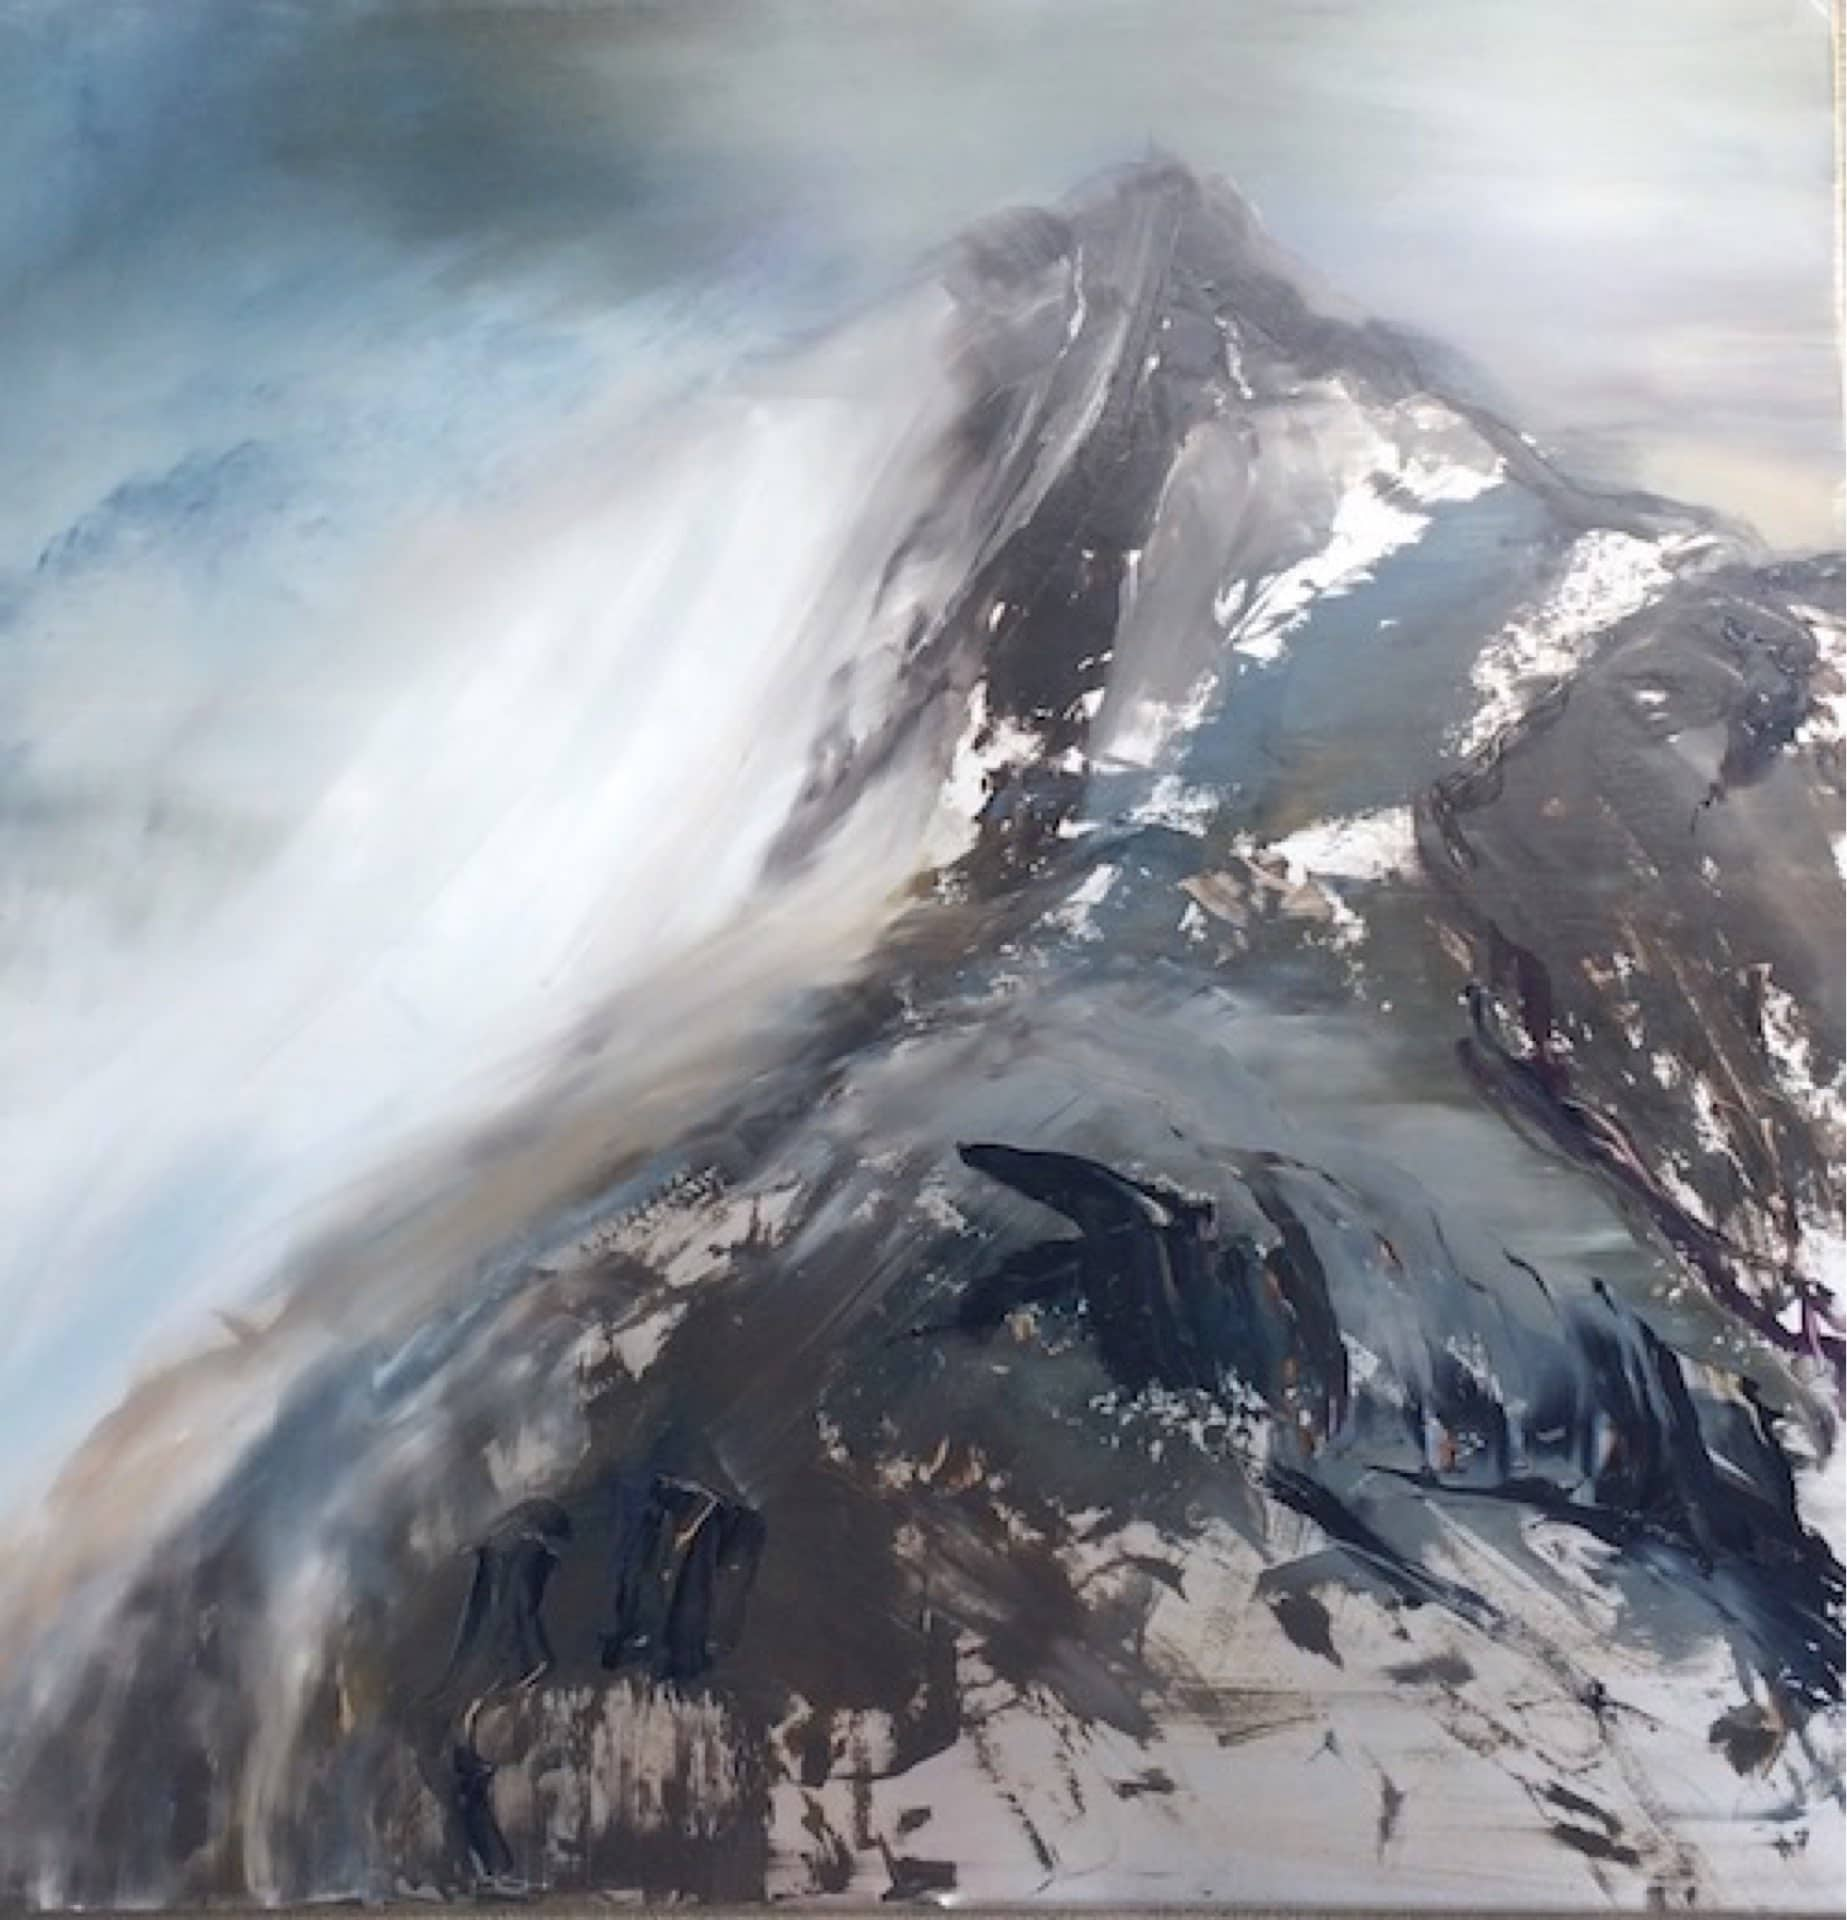 First Snow, Contemporary oil painting on metal inspired by the mountains of the Wasatch Back in Utah, Fine Art by Cynthia McLoughlin